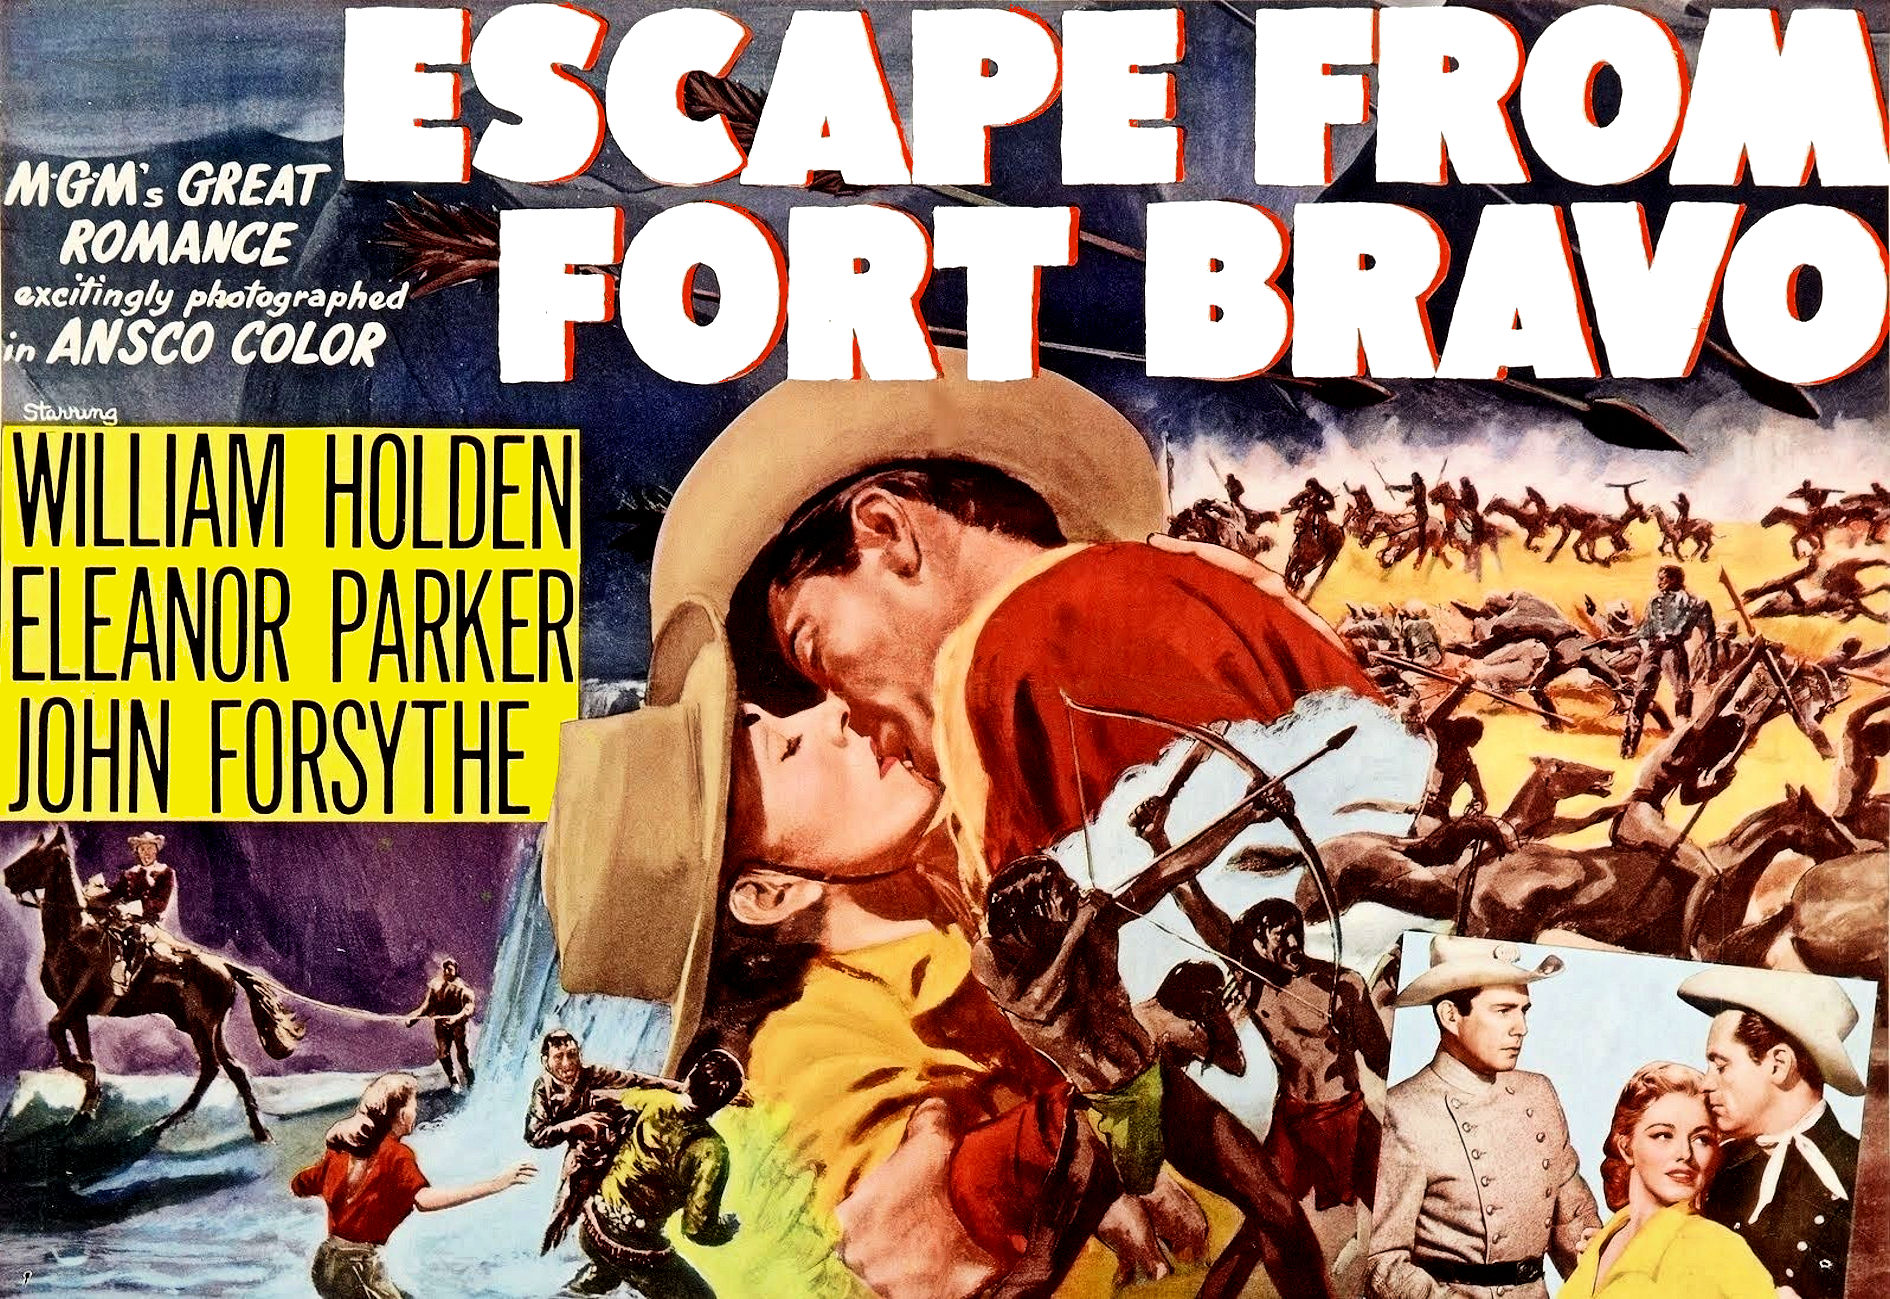 William Holden, John Forsythe, and Eleanor Parker in Escape from Fort Bravo (1953)